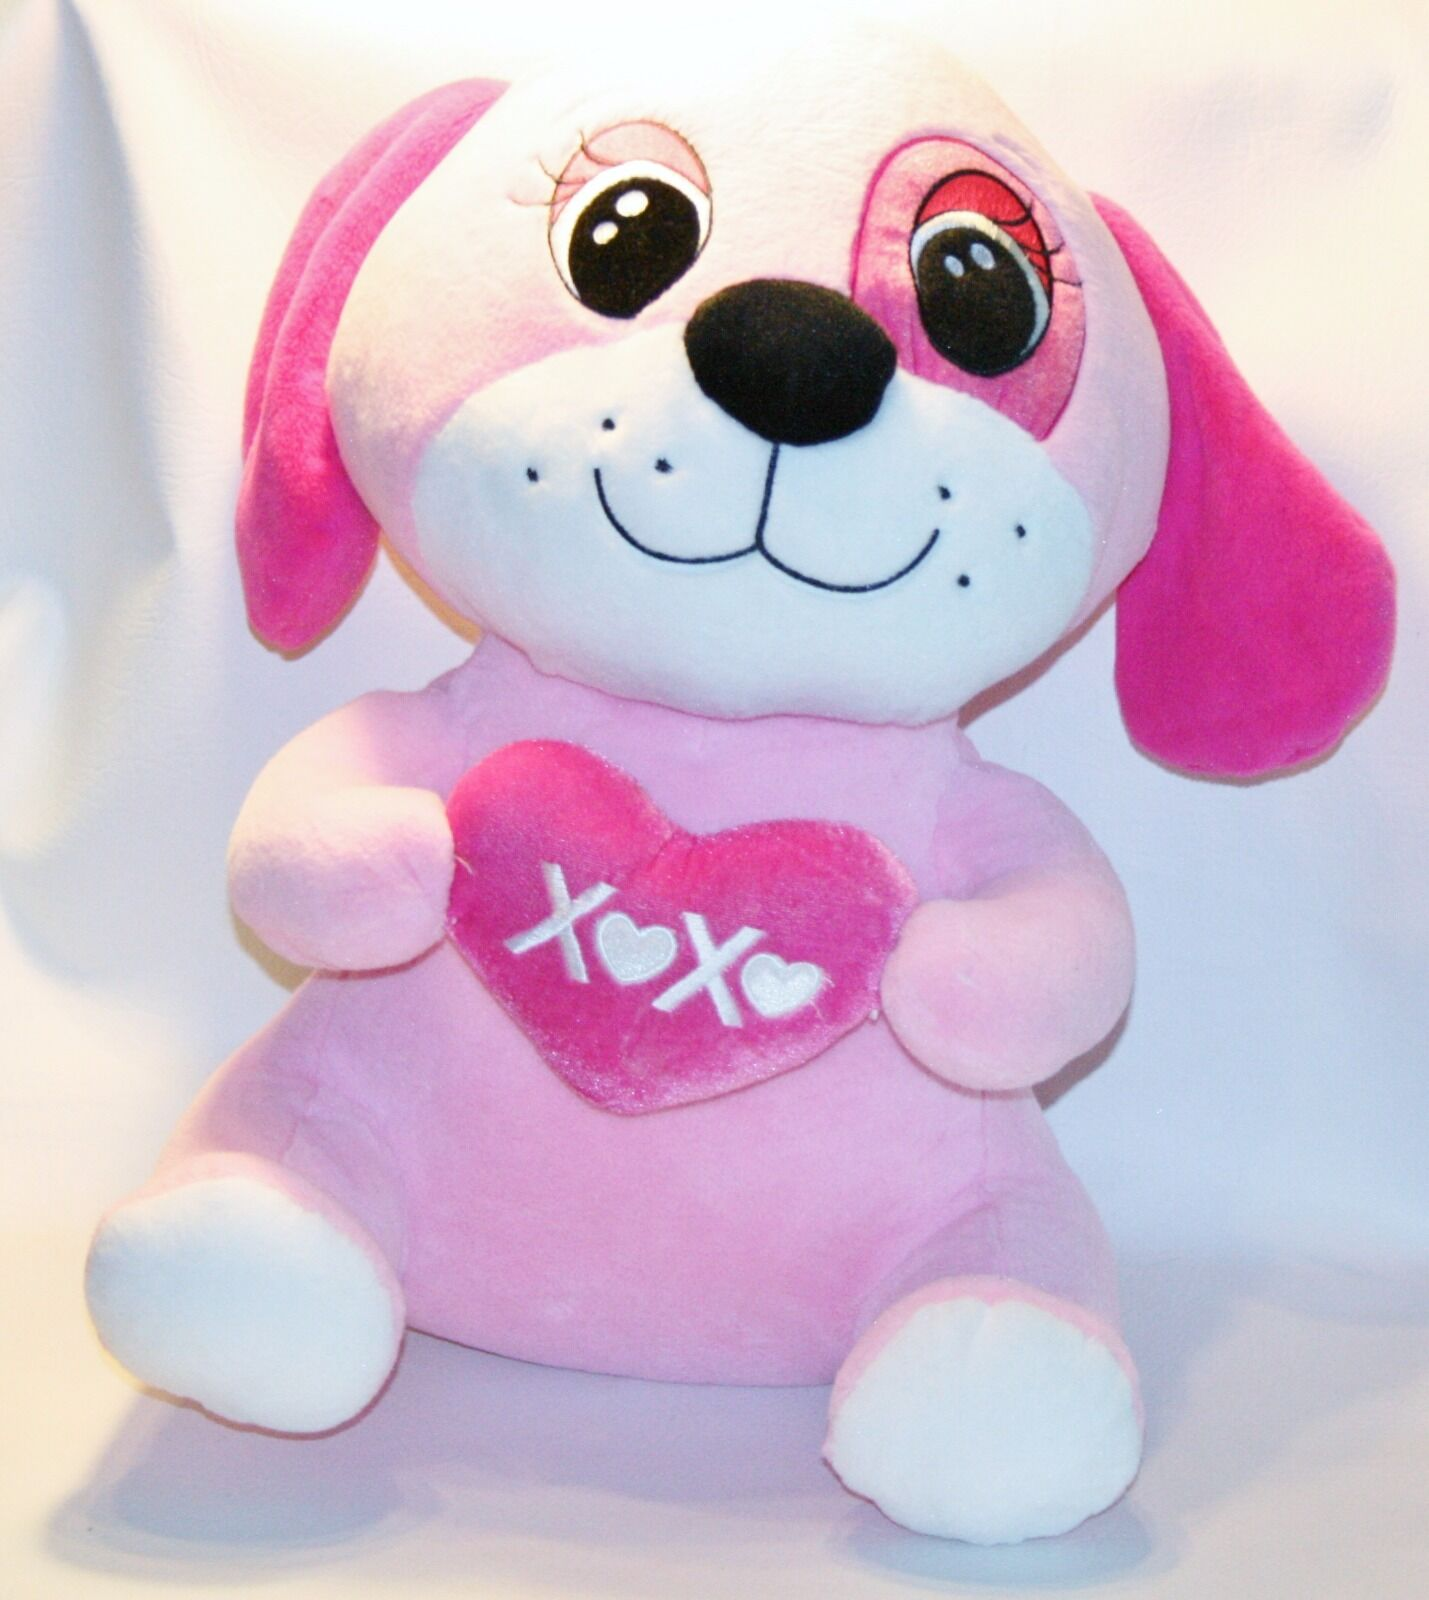 Dan Dee Dandee Plush Rosa Hugs Kisses Puppy Dog Stuffed Animal Lovey Toy Large